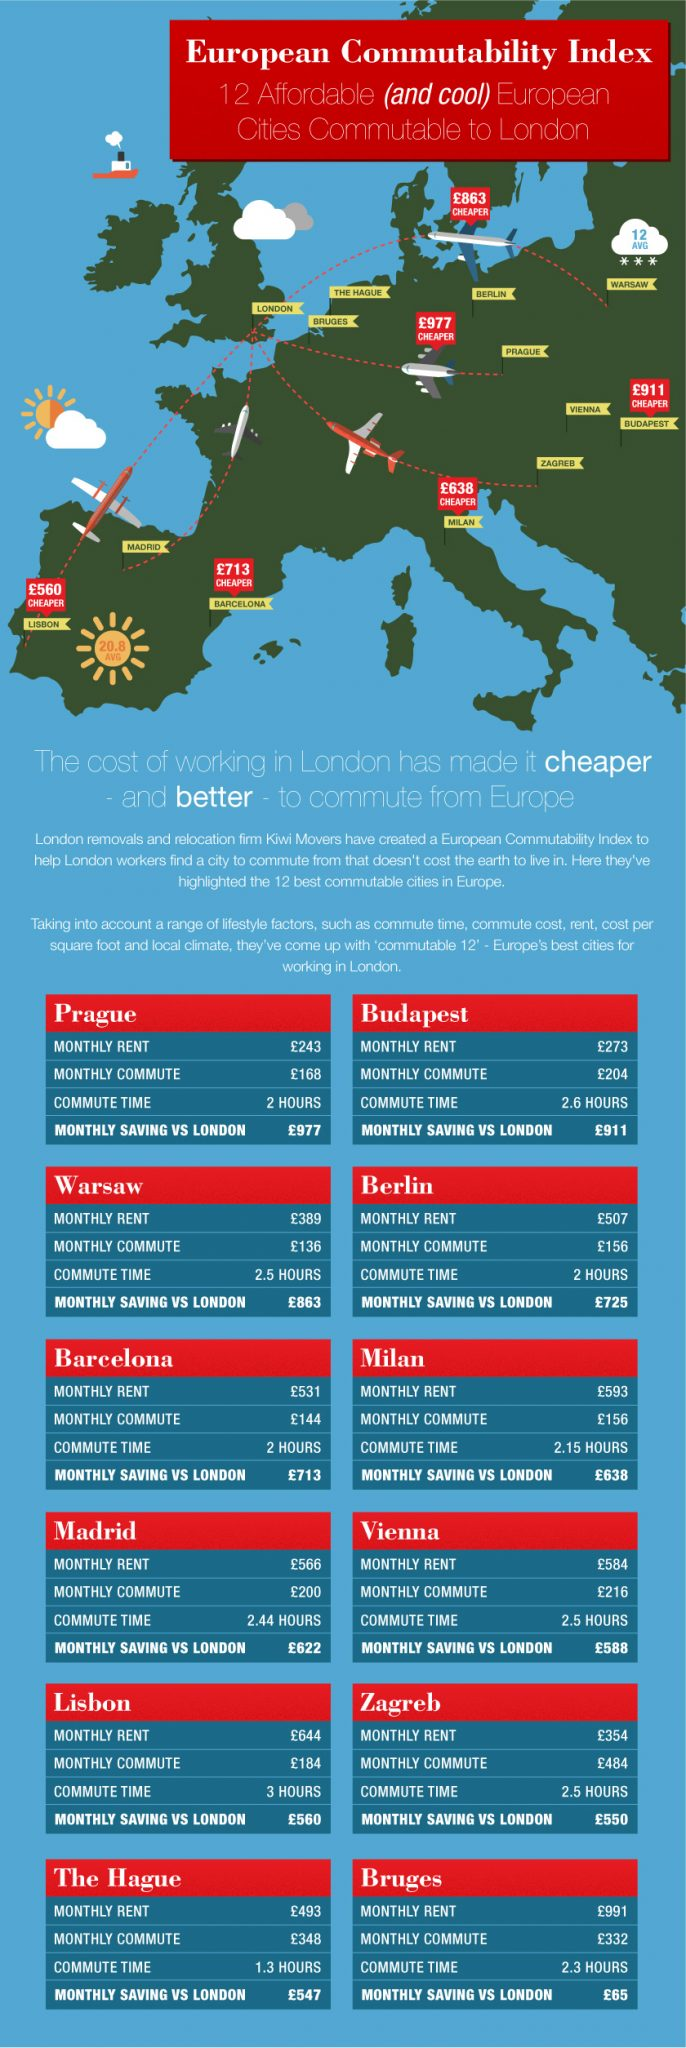 Kiwimovers.co.uk European Commutability Index